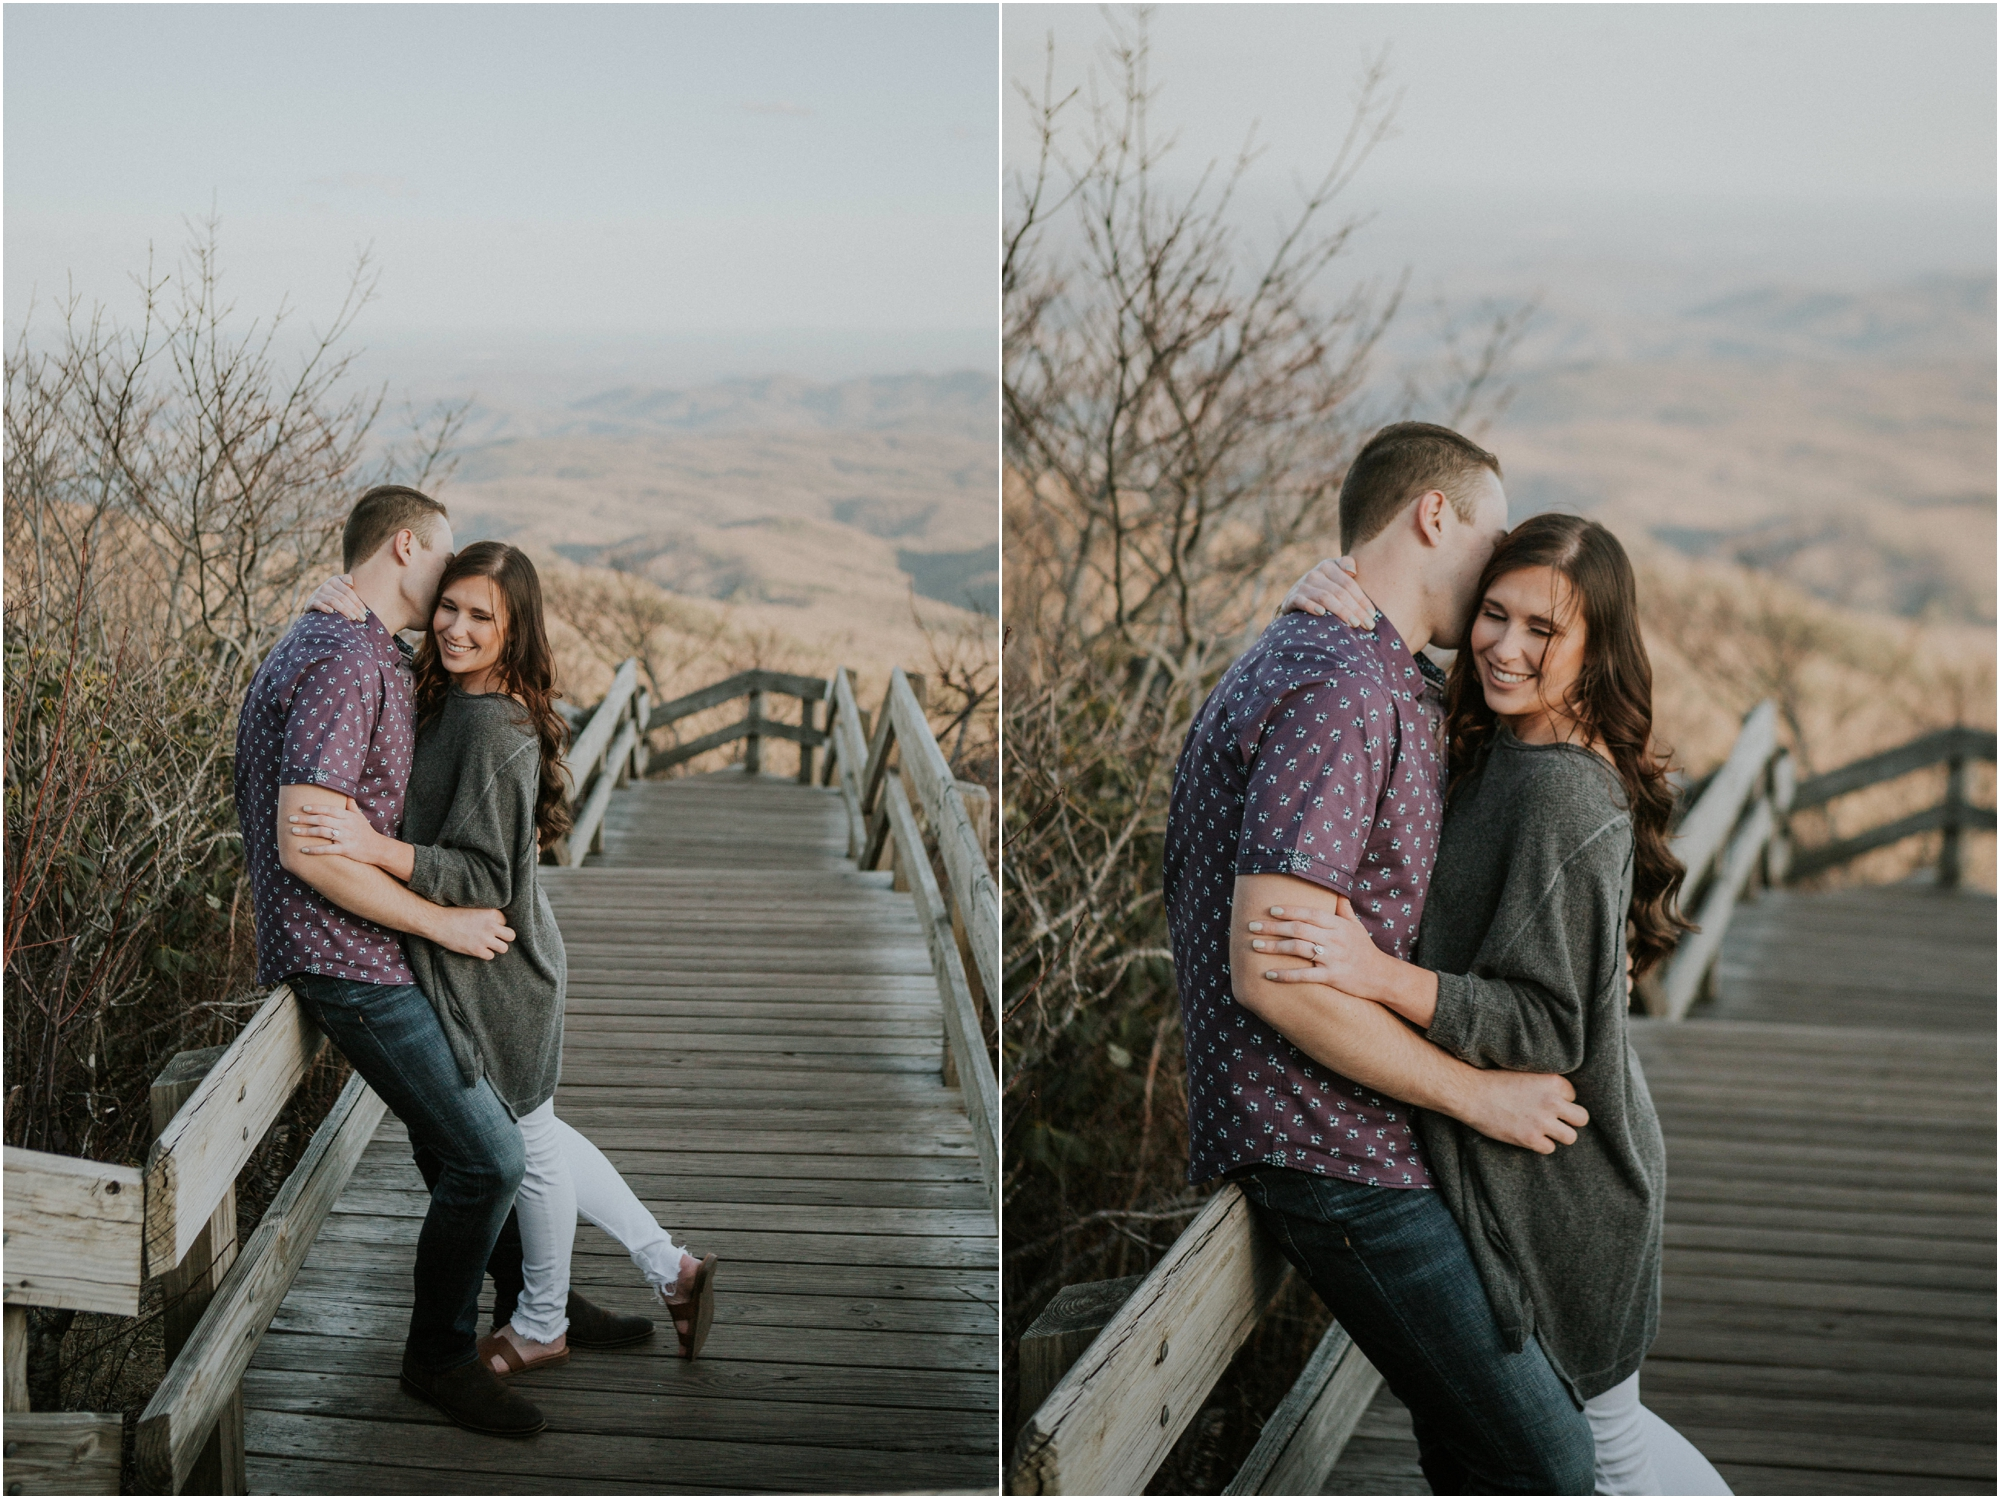 blue-ridge-parkway-engagement-session-north-carolina-boone-blowing-rock-northeast-tennessee-katy-sergent-photography_0013.jpg